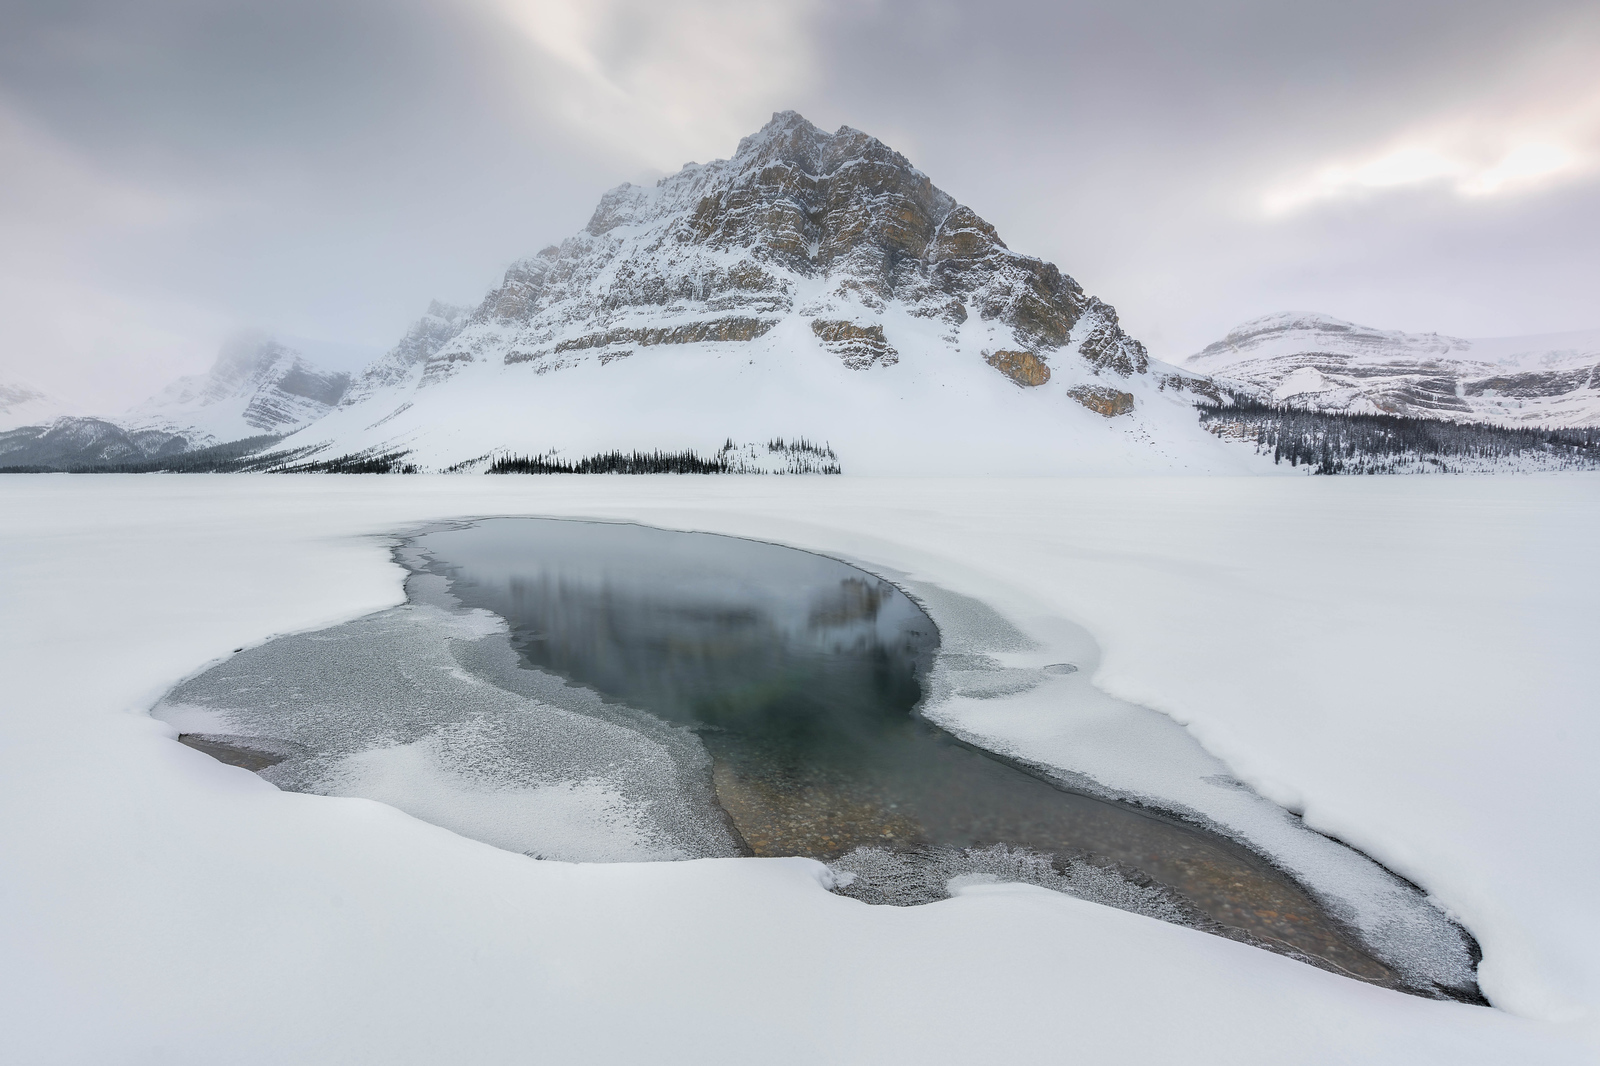 Enjoy the winter landscapes in Banff Canada